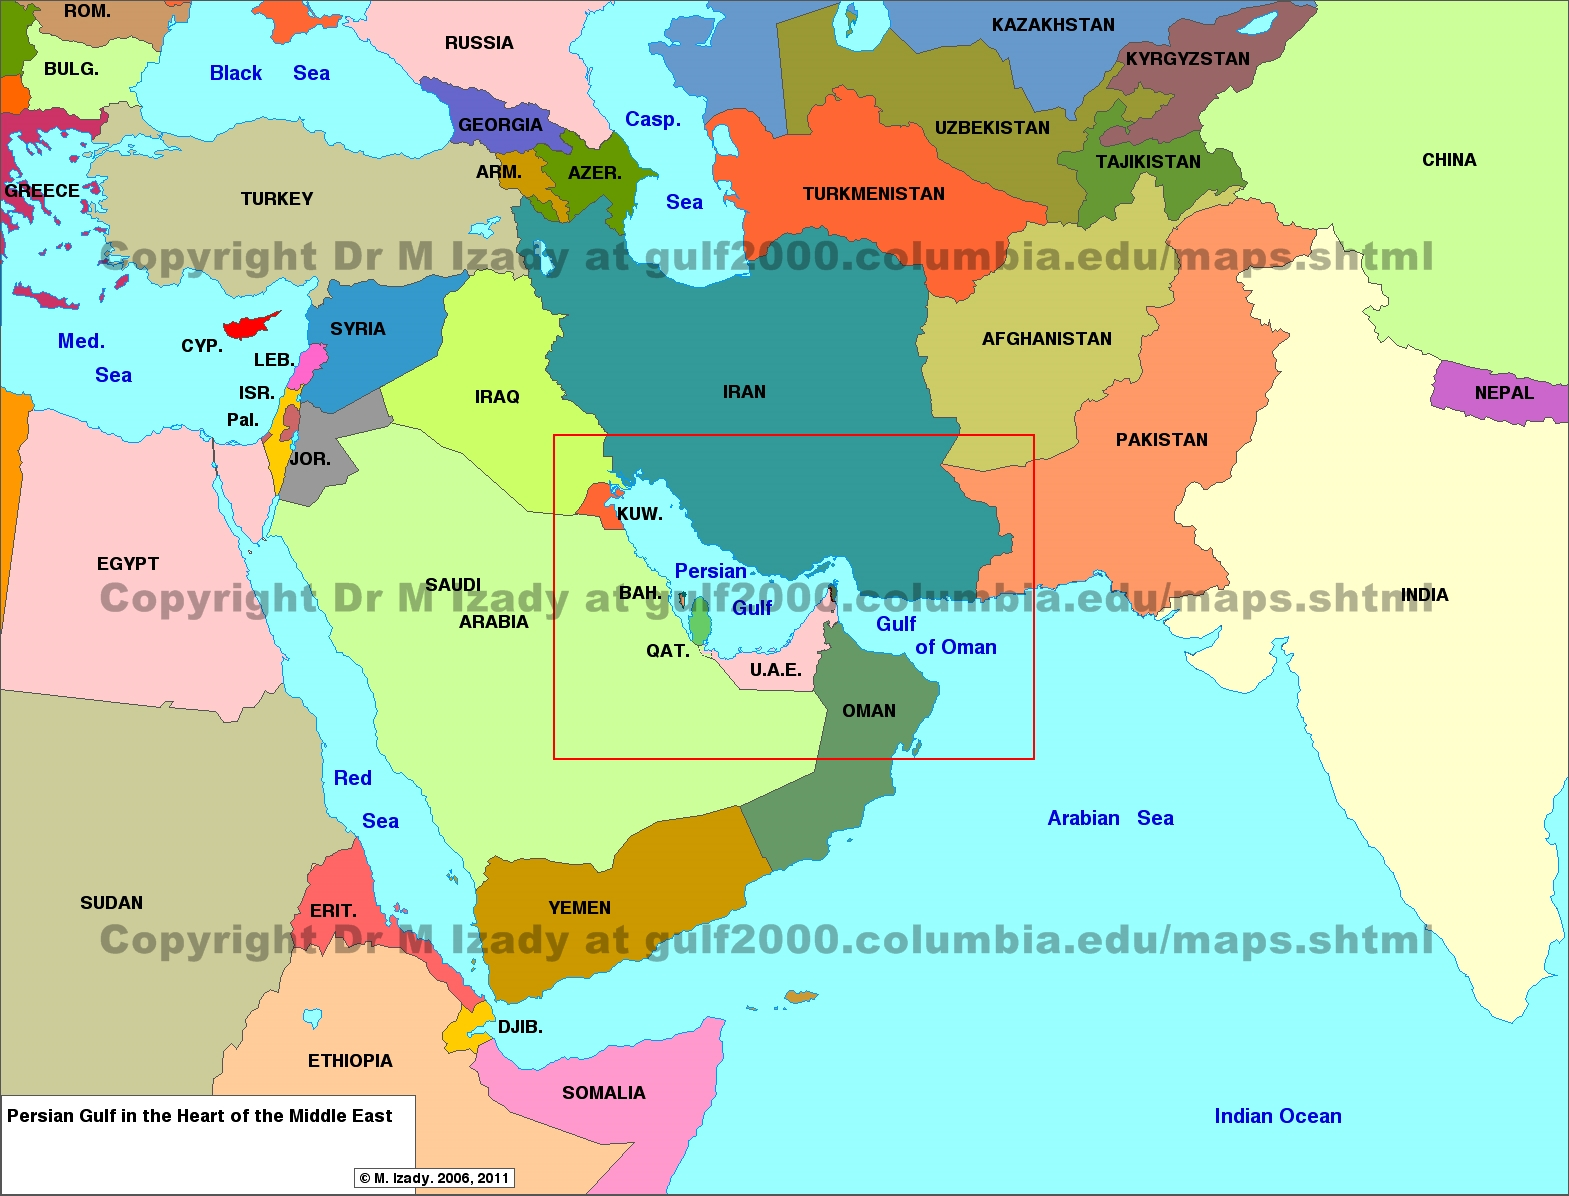 where is bahrain located on a middle east map Gulf Of Bahrain Maps The Gulf 2000 Project Sipa Columbia where is bahrain located on a middle east map